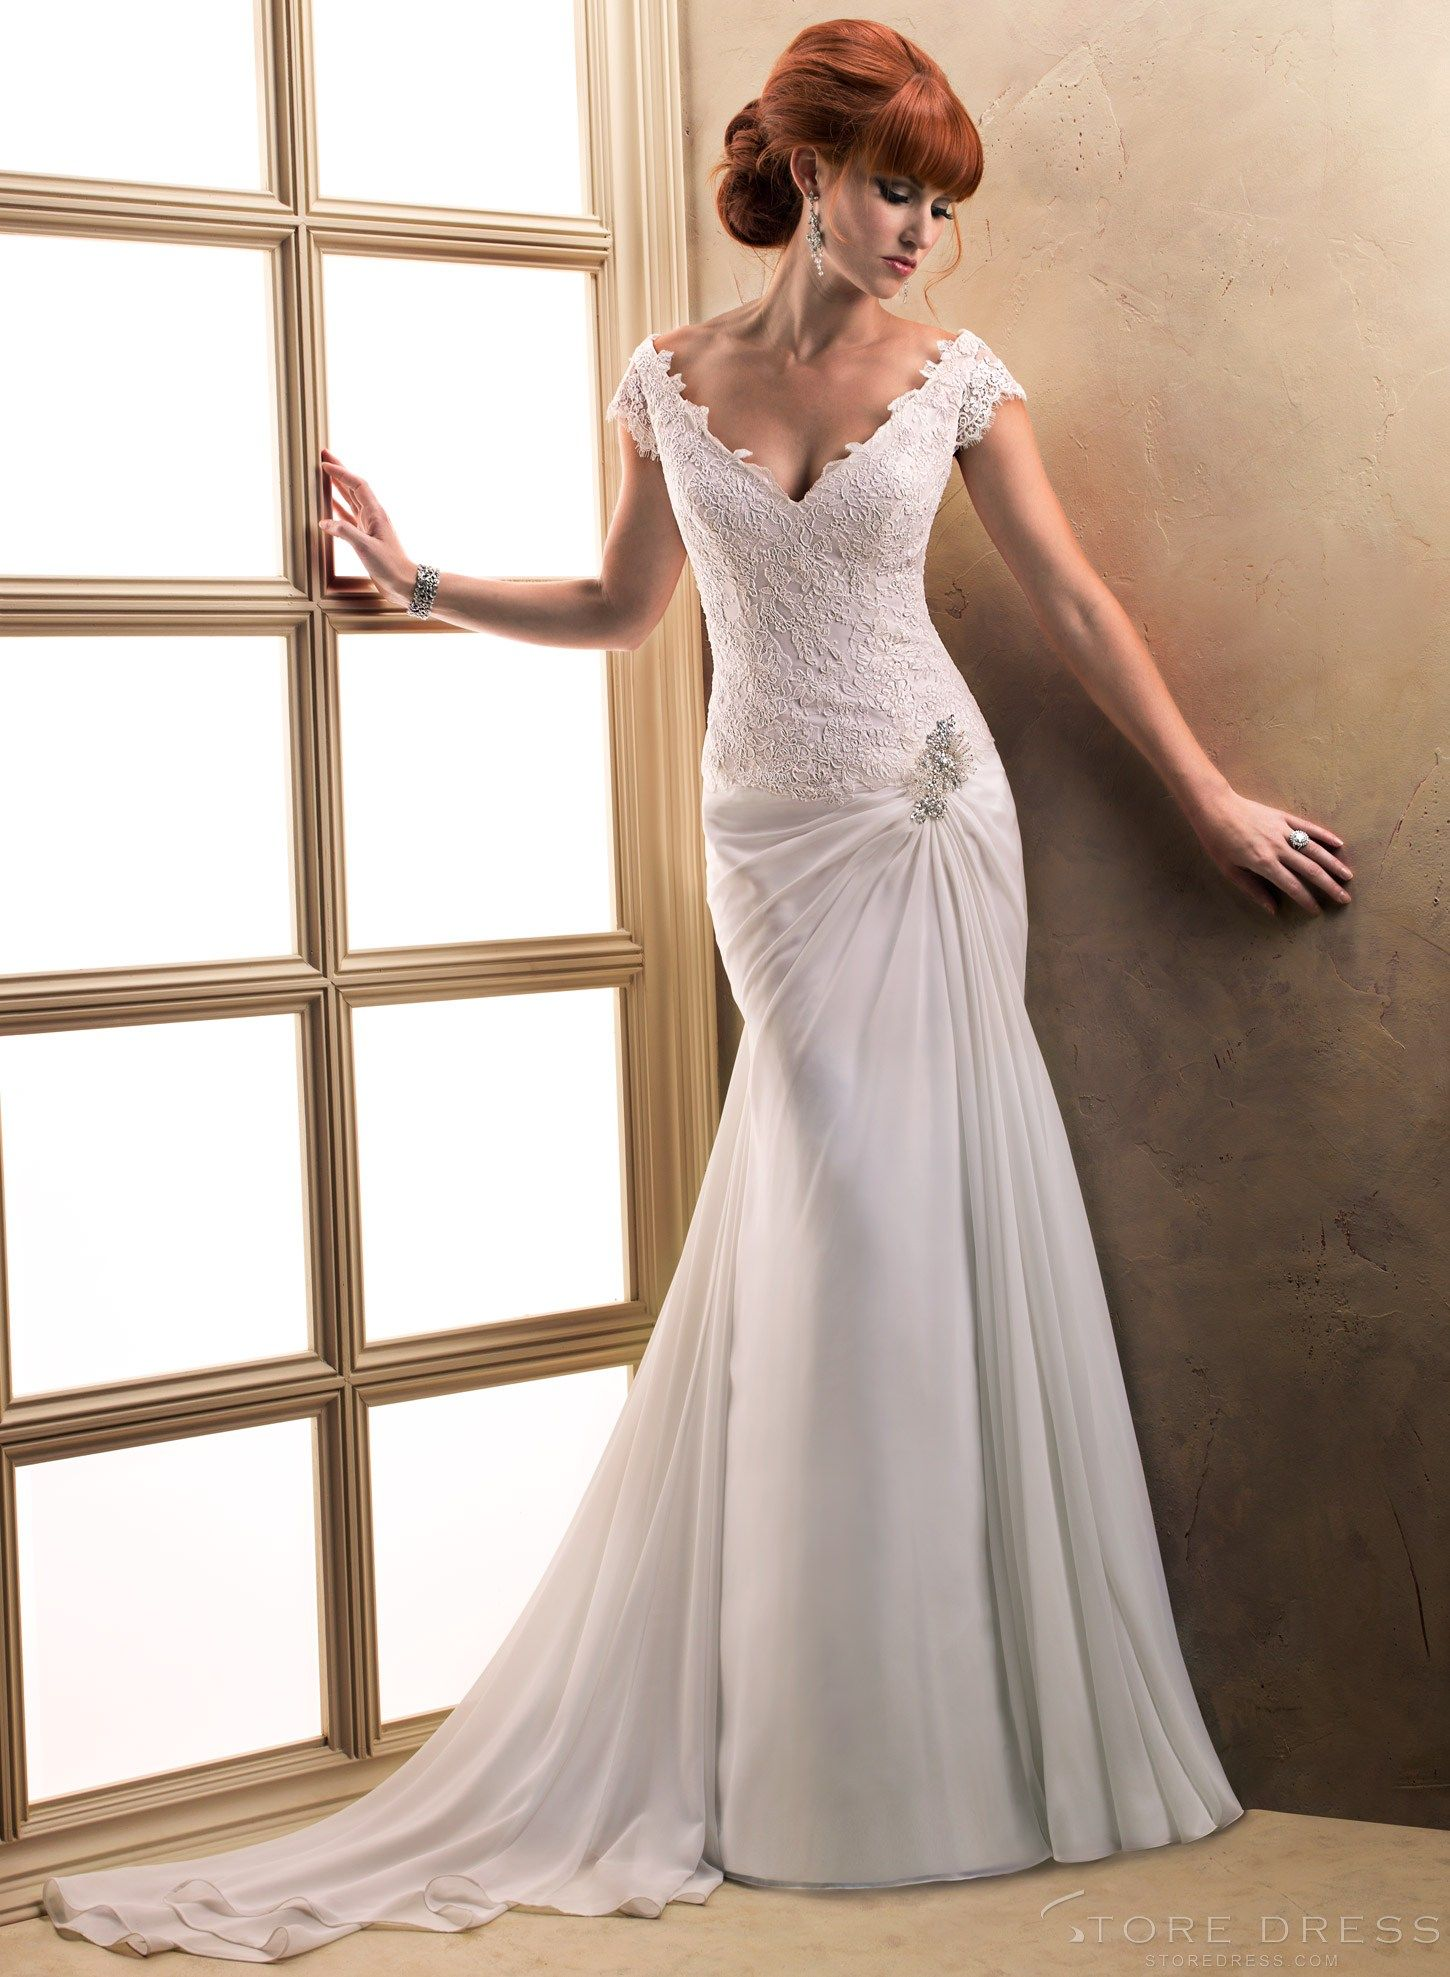 Adorable new arrival style vneck lace wedding dress love the